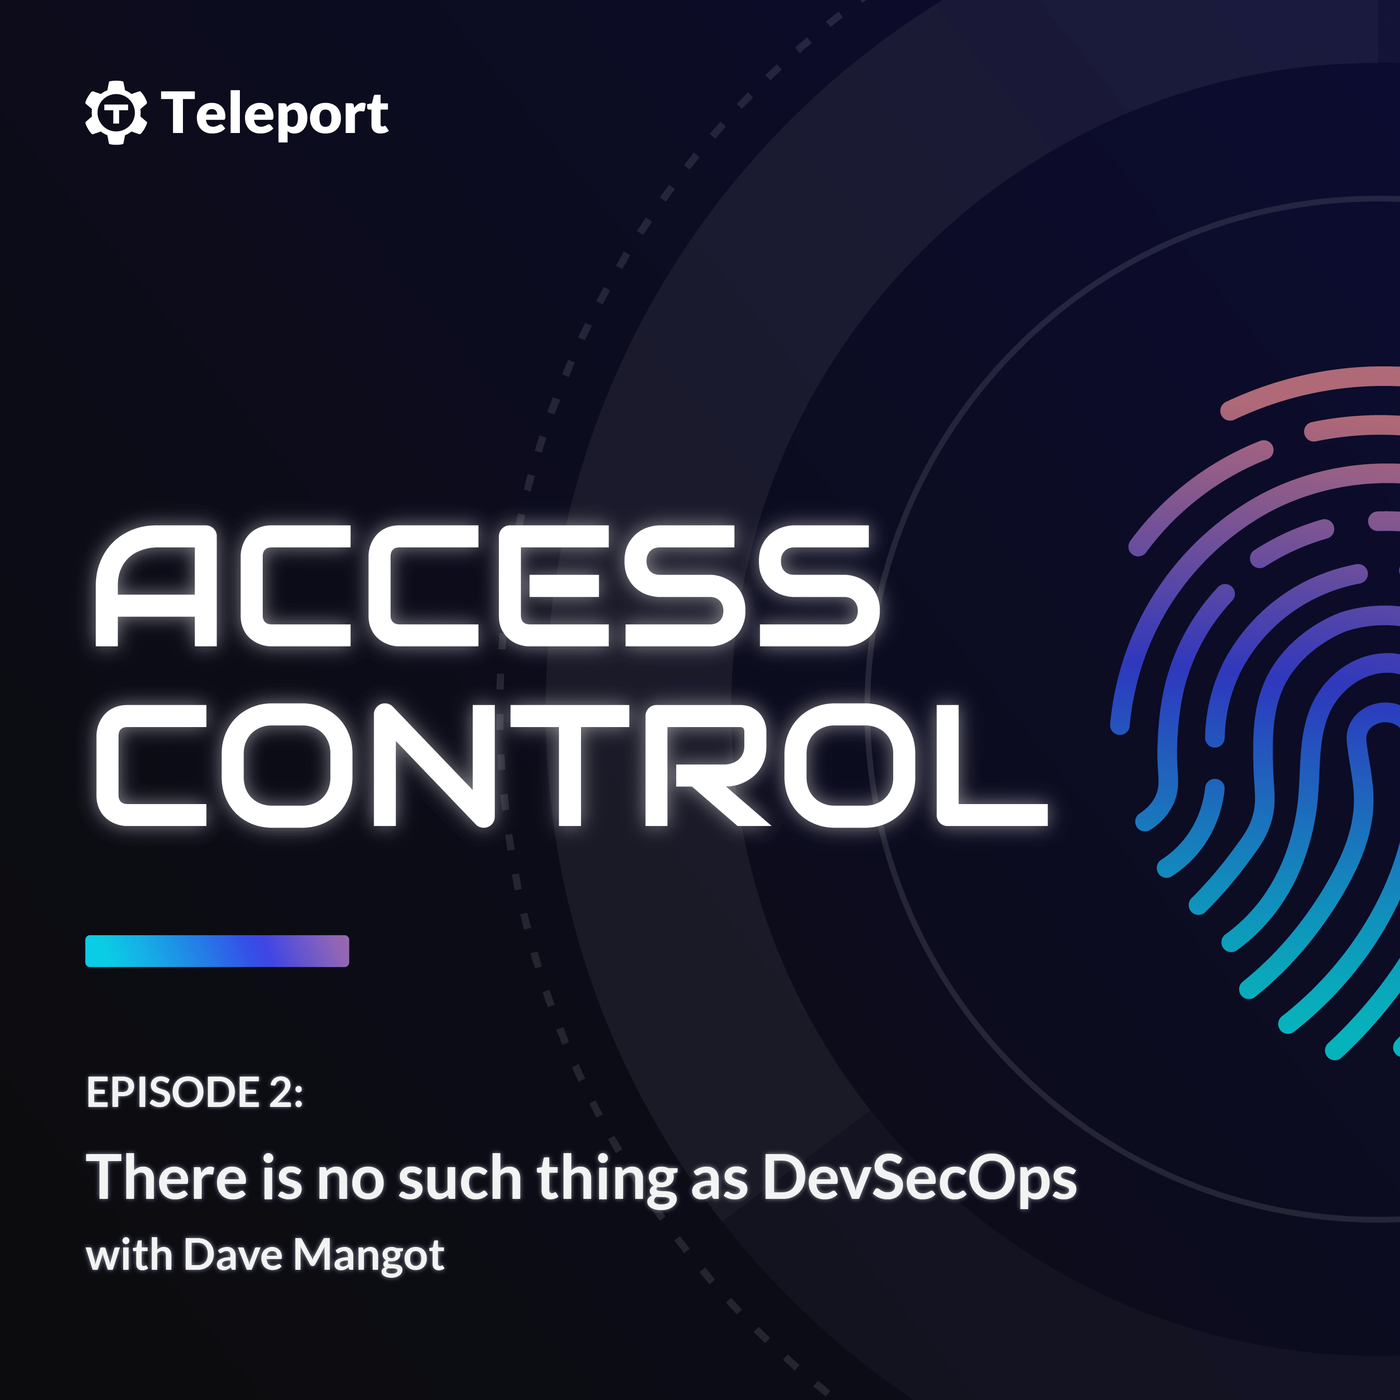 There is no such thing as DevSecOps